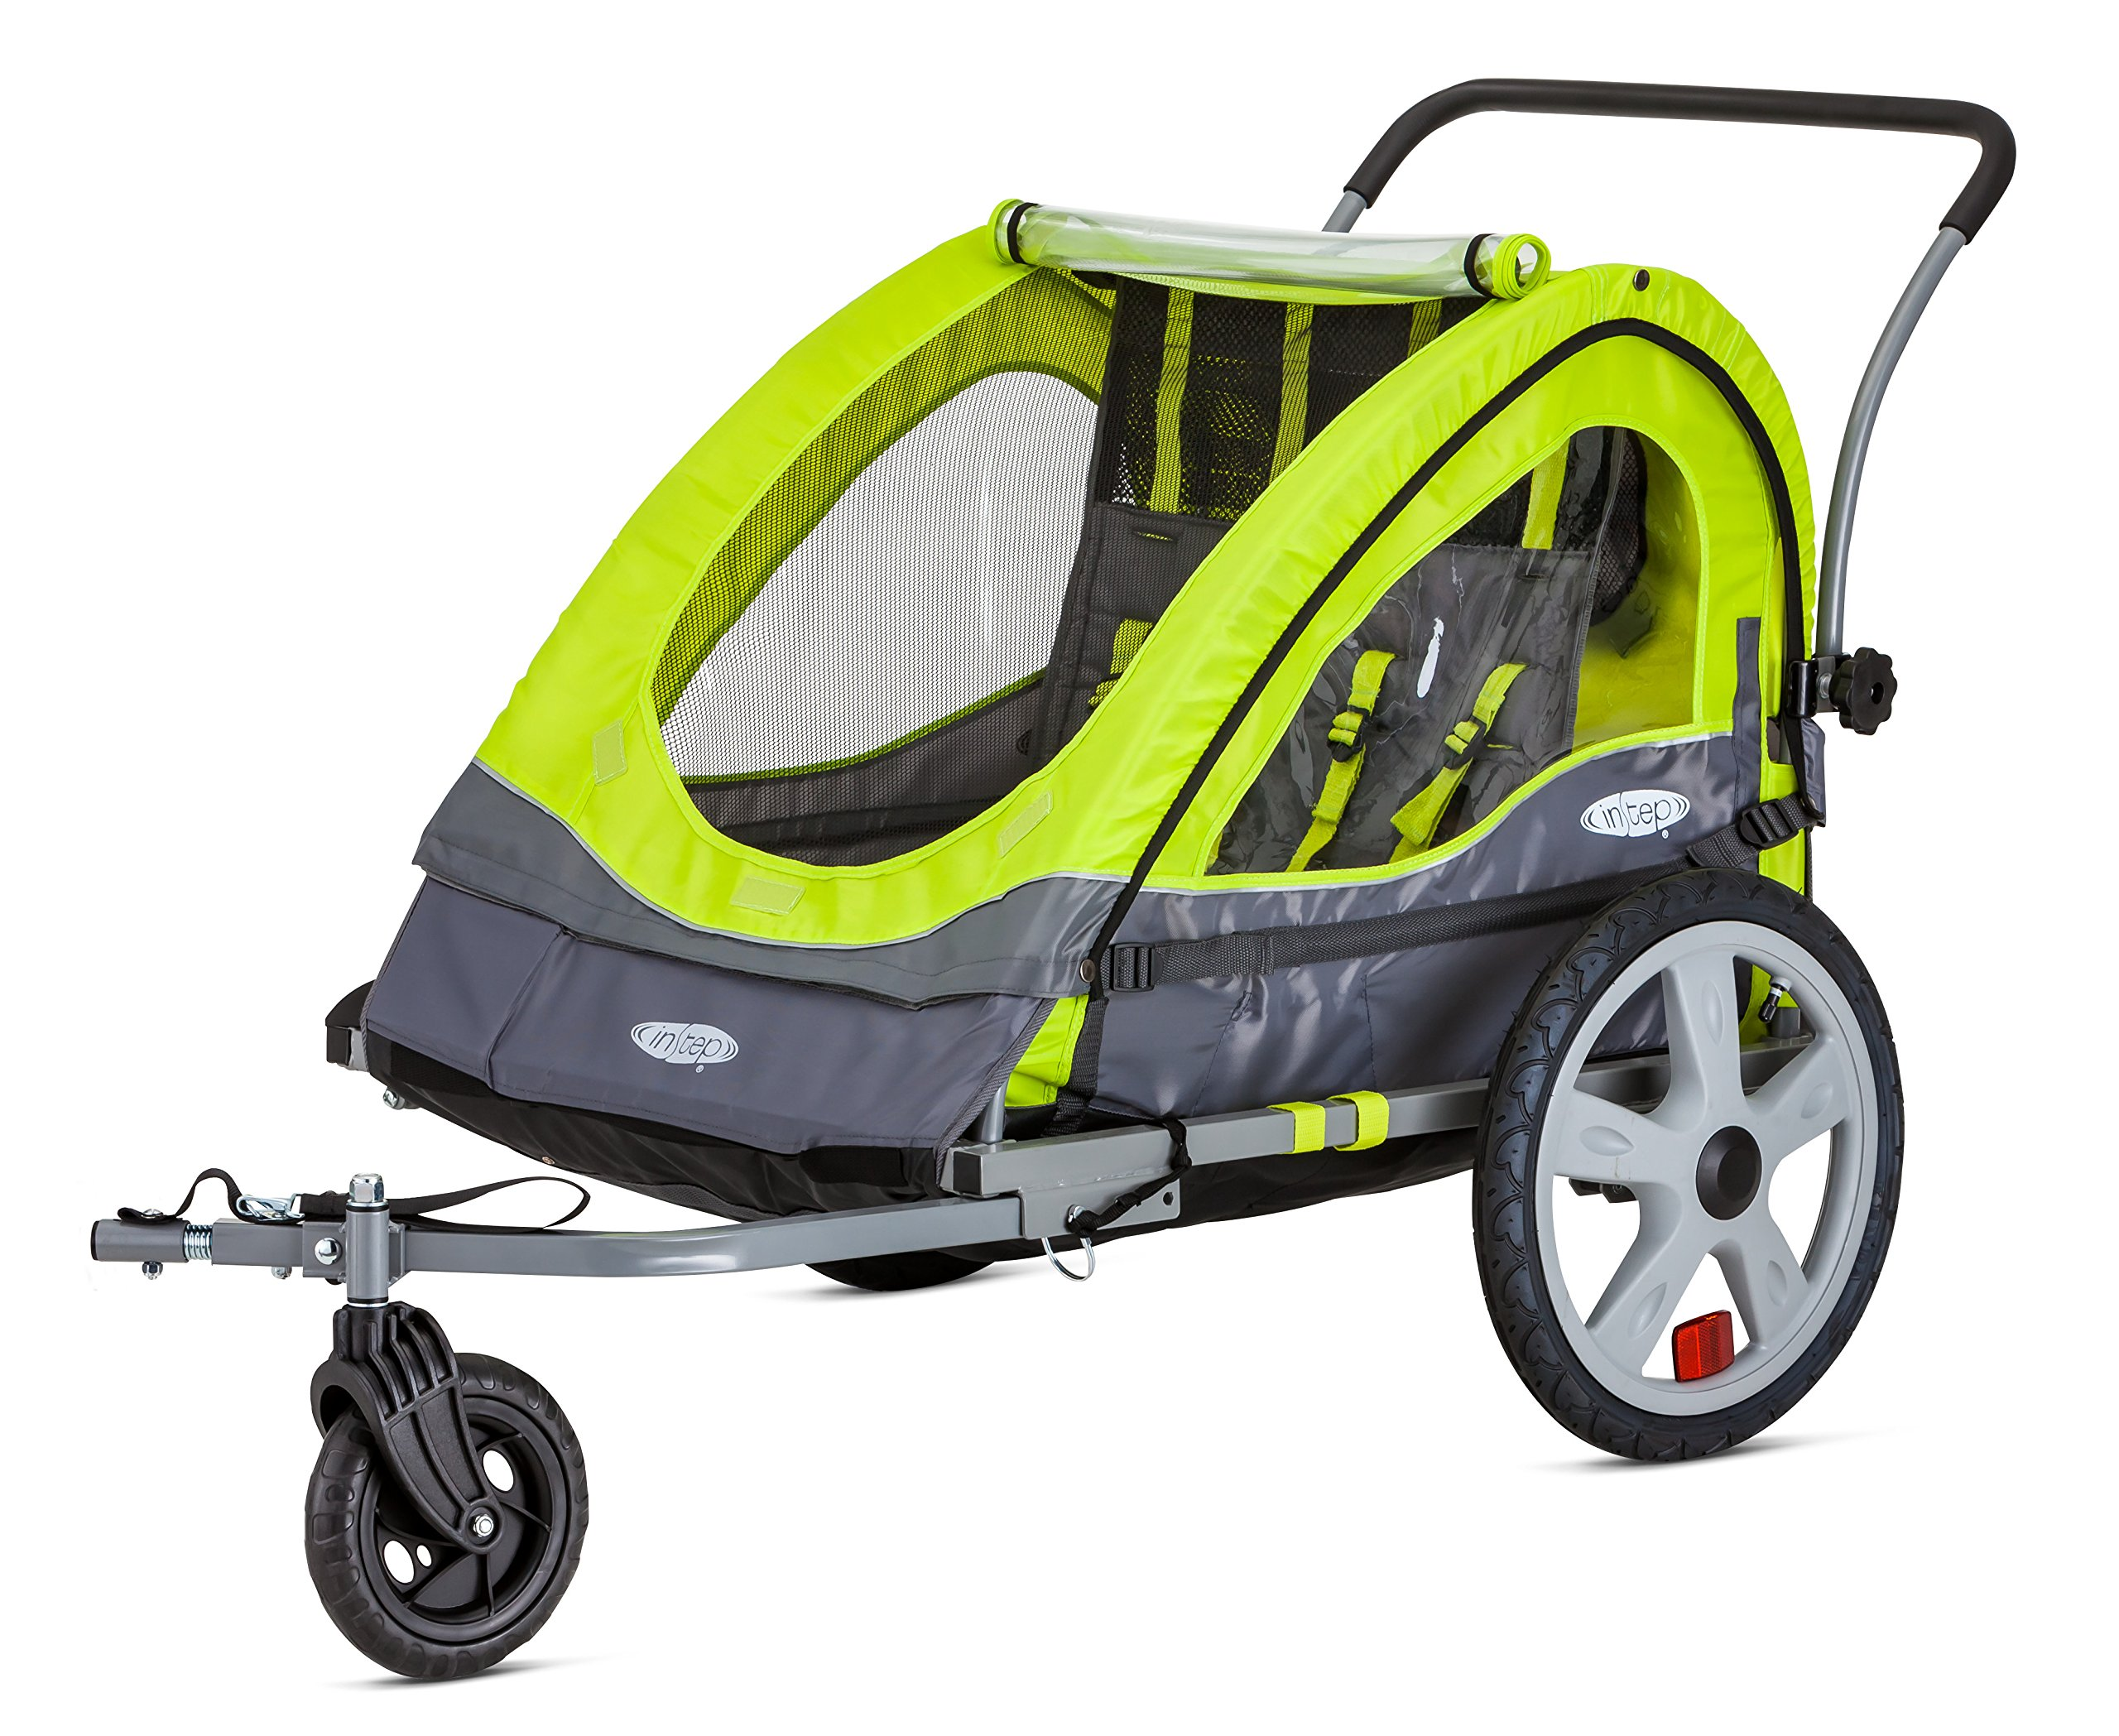 InStep Quick-N-EZ Double Child Carrier Bicycle Trailer, 2-Passenger by Instep